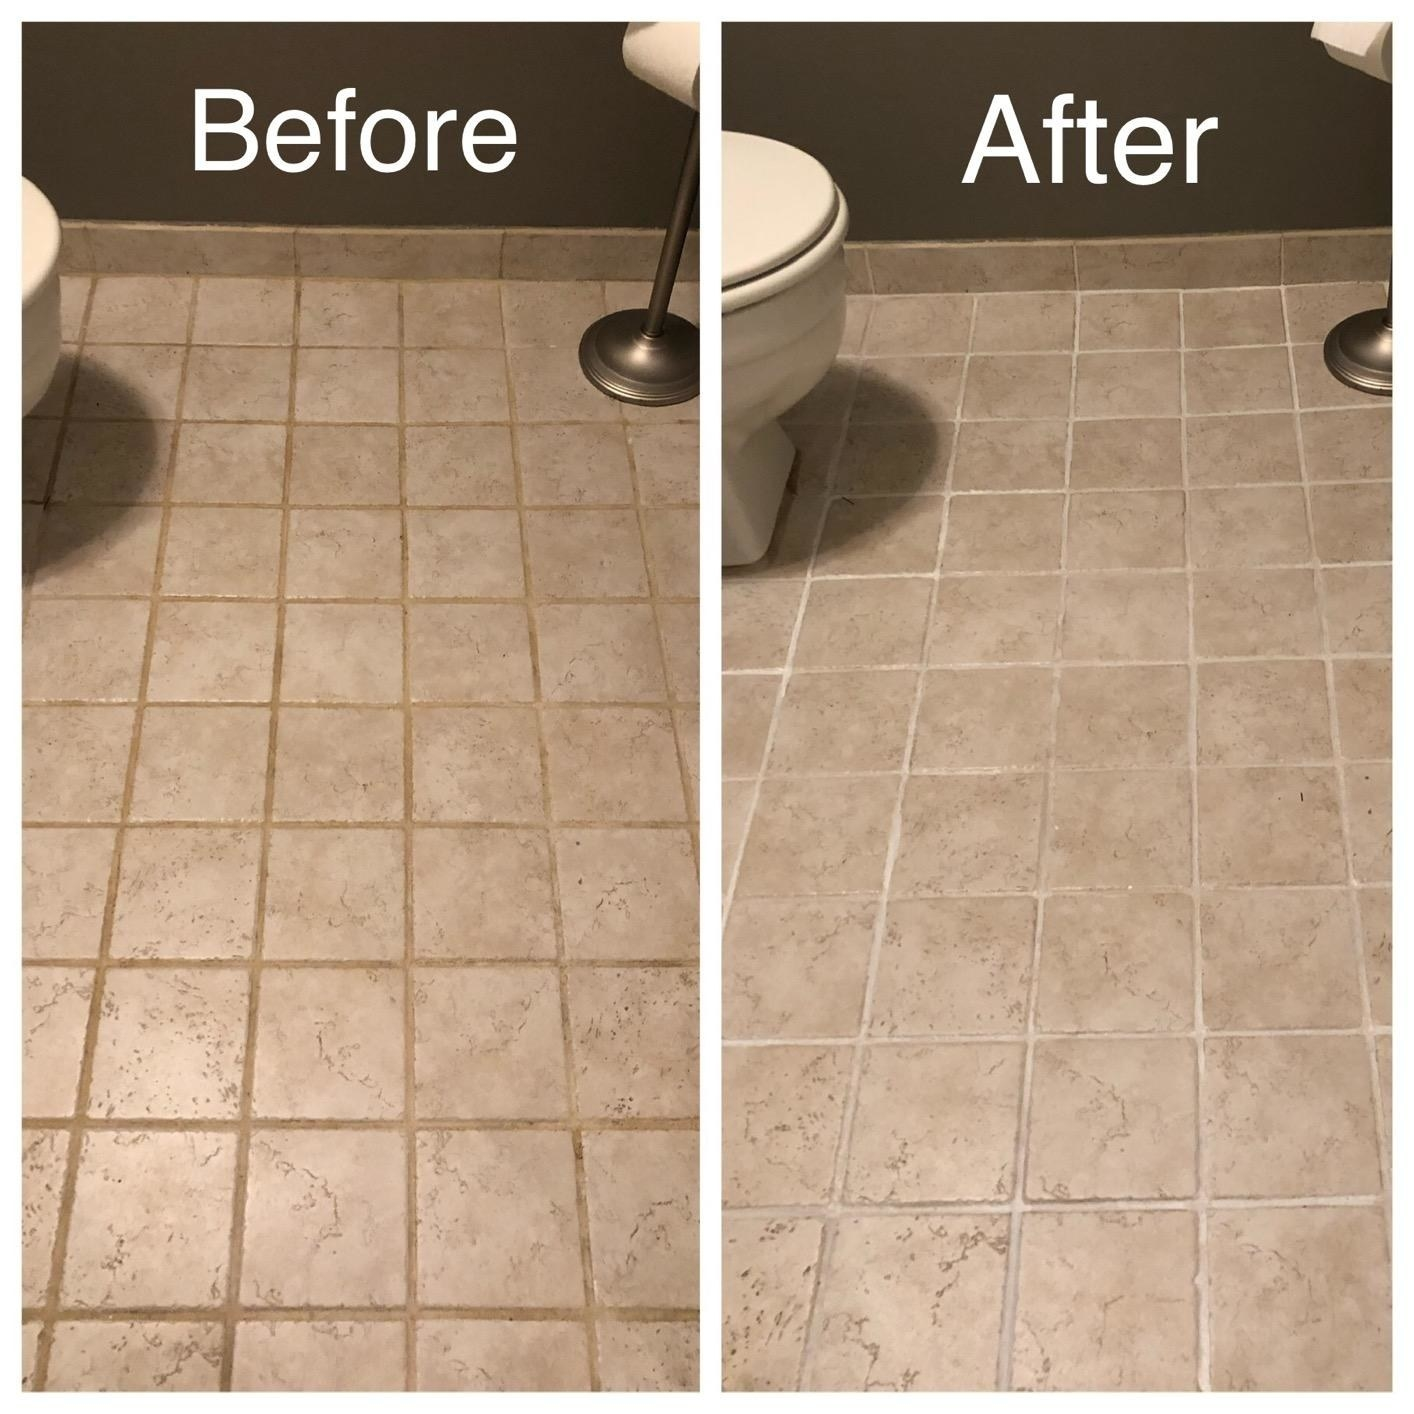 Reviewer image of before and after using the grout pen on their tiles